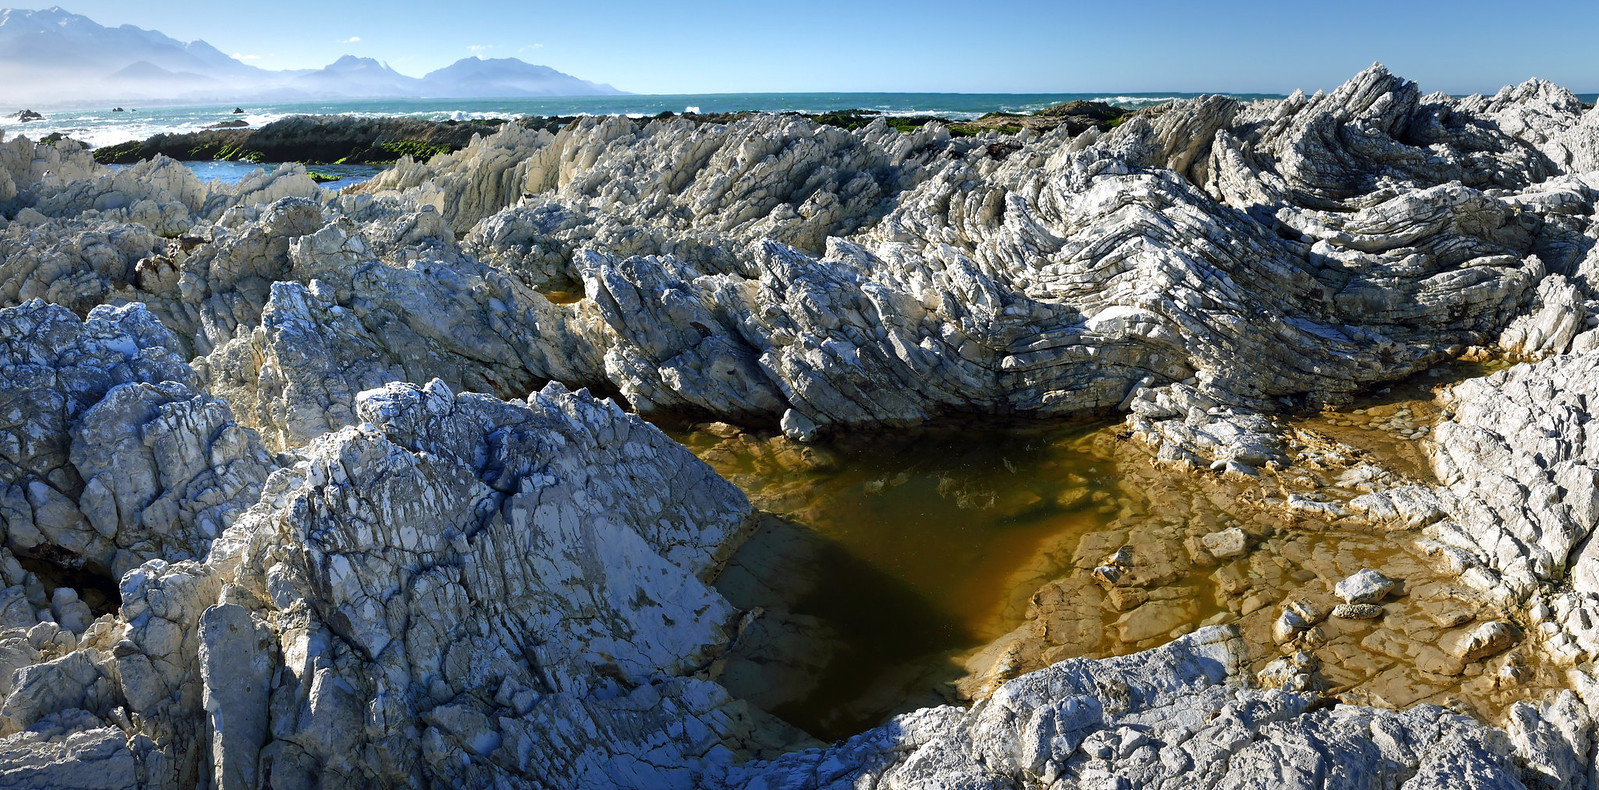 A Rugged Coastline Kaikoura Nz Oligocene Tilted Folded Ver